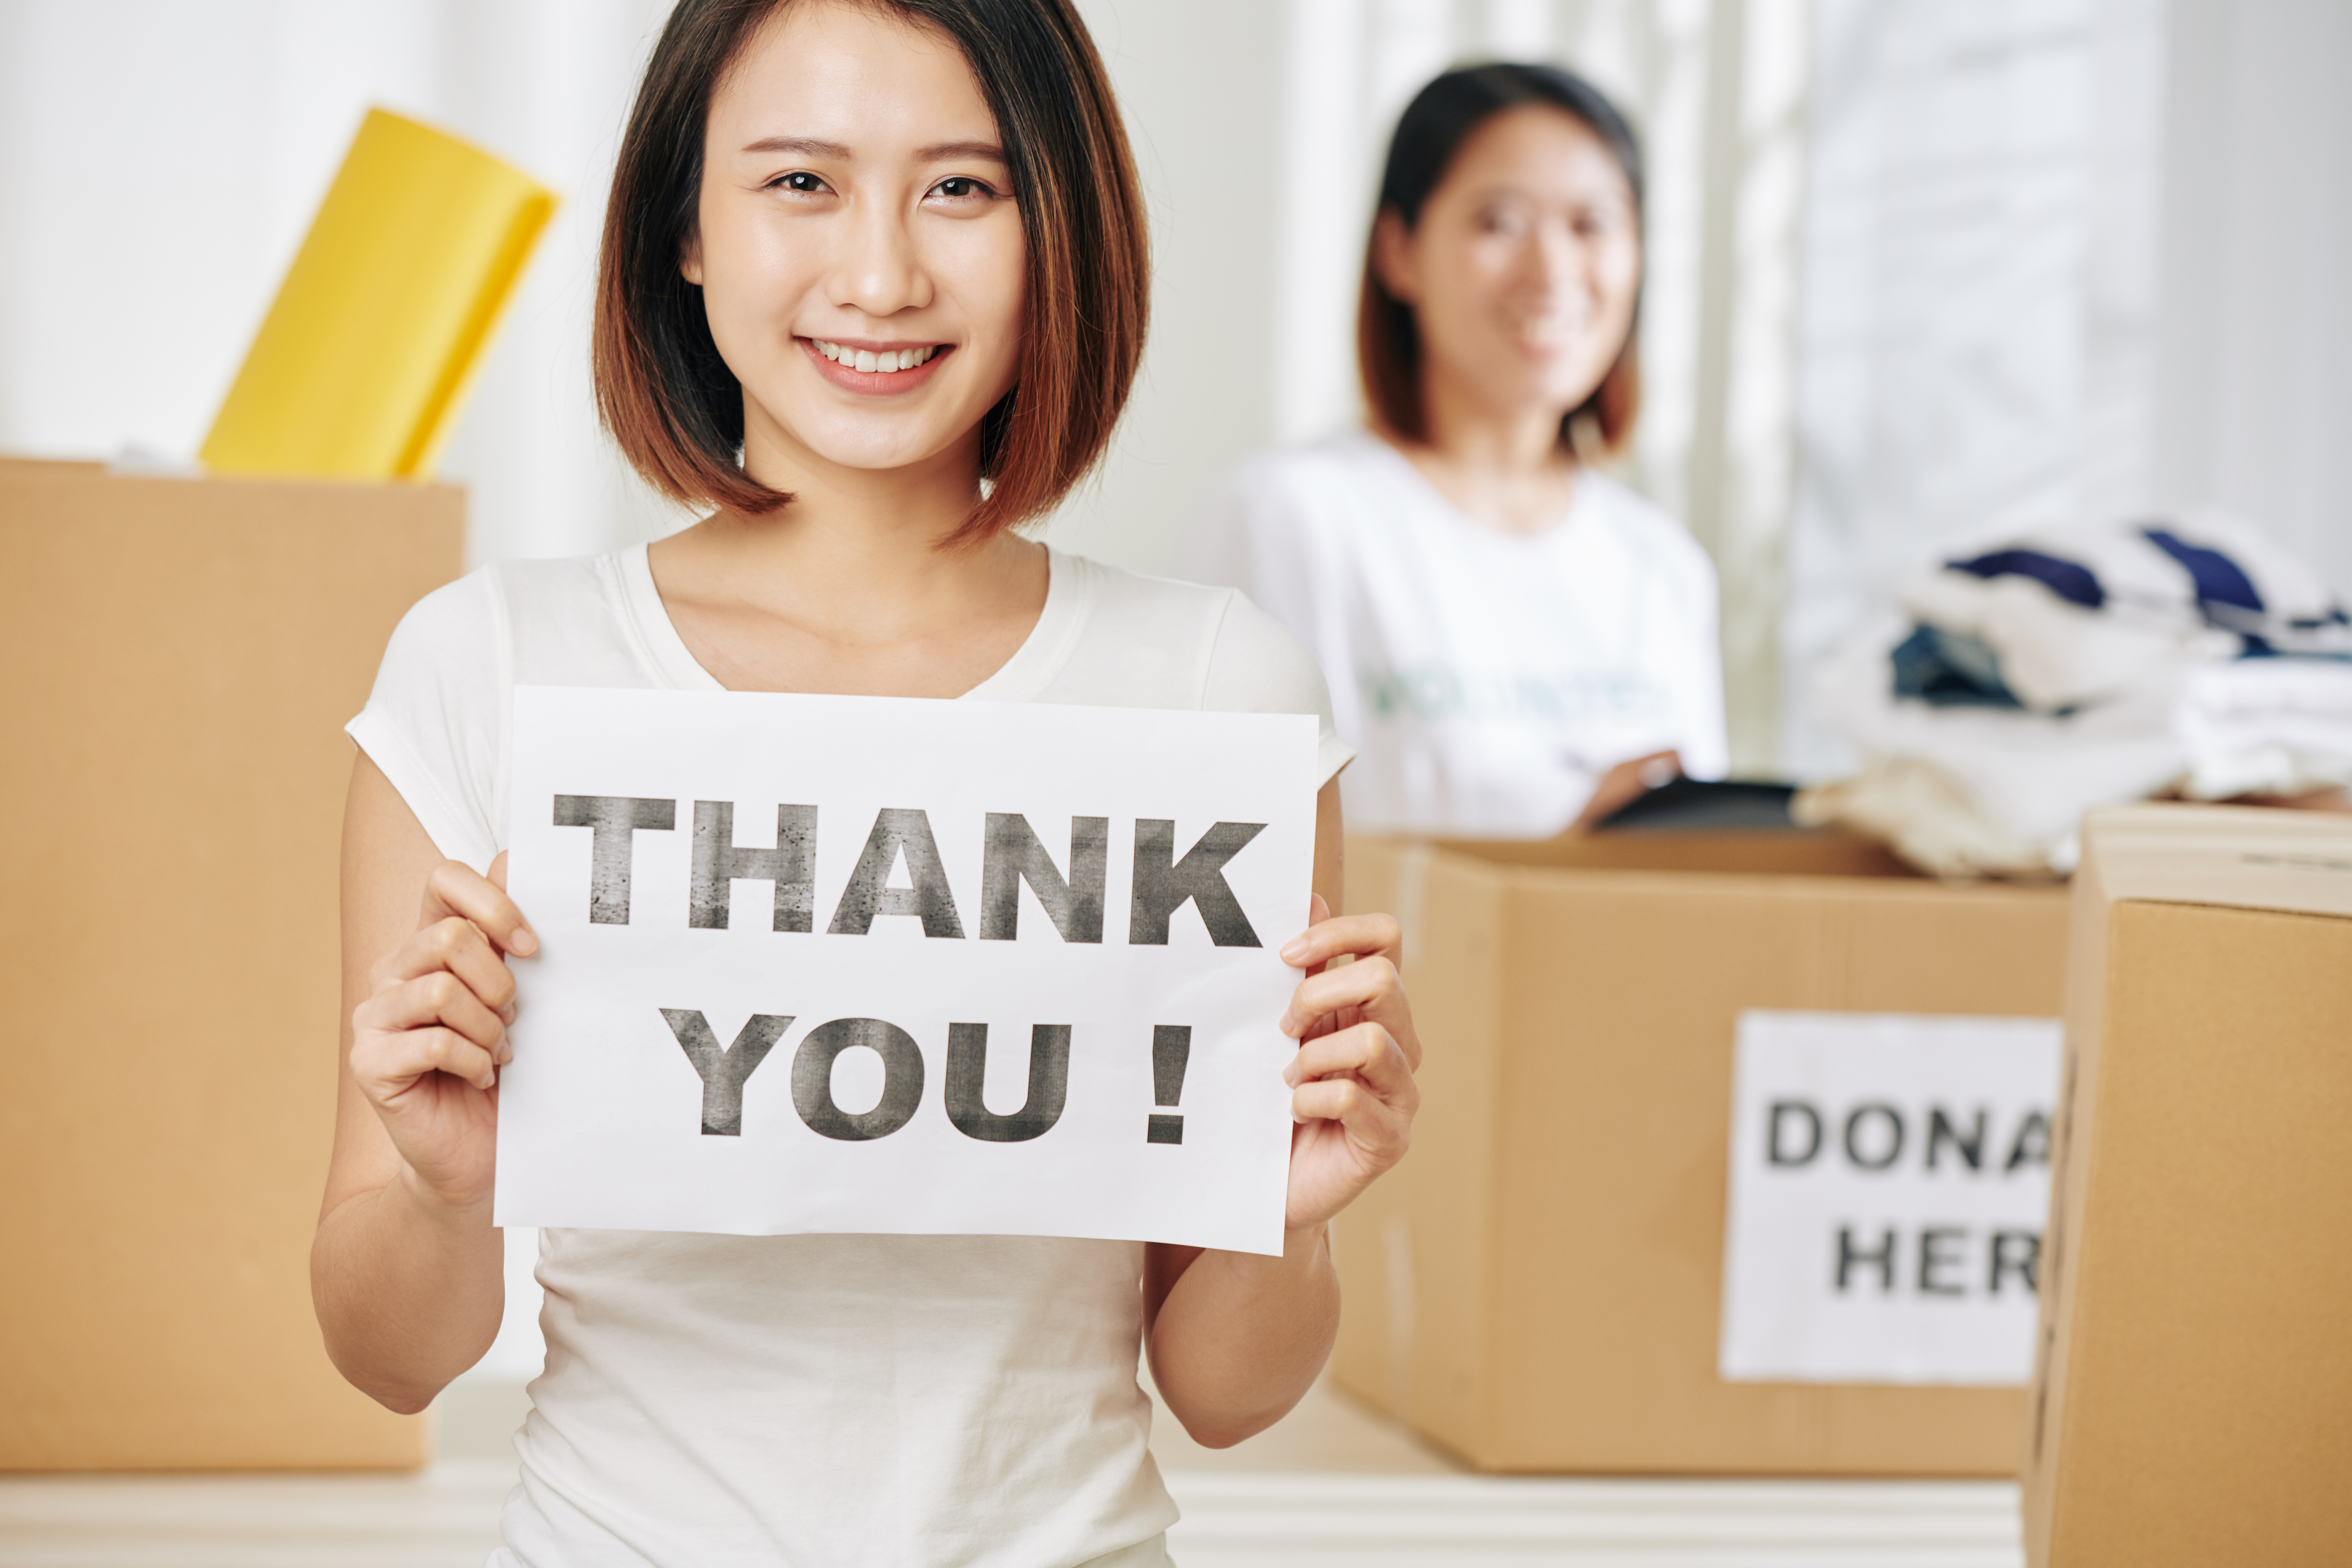 women holding thank you sign